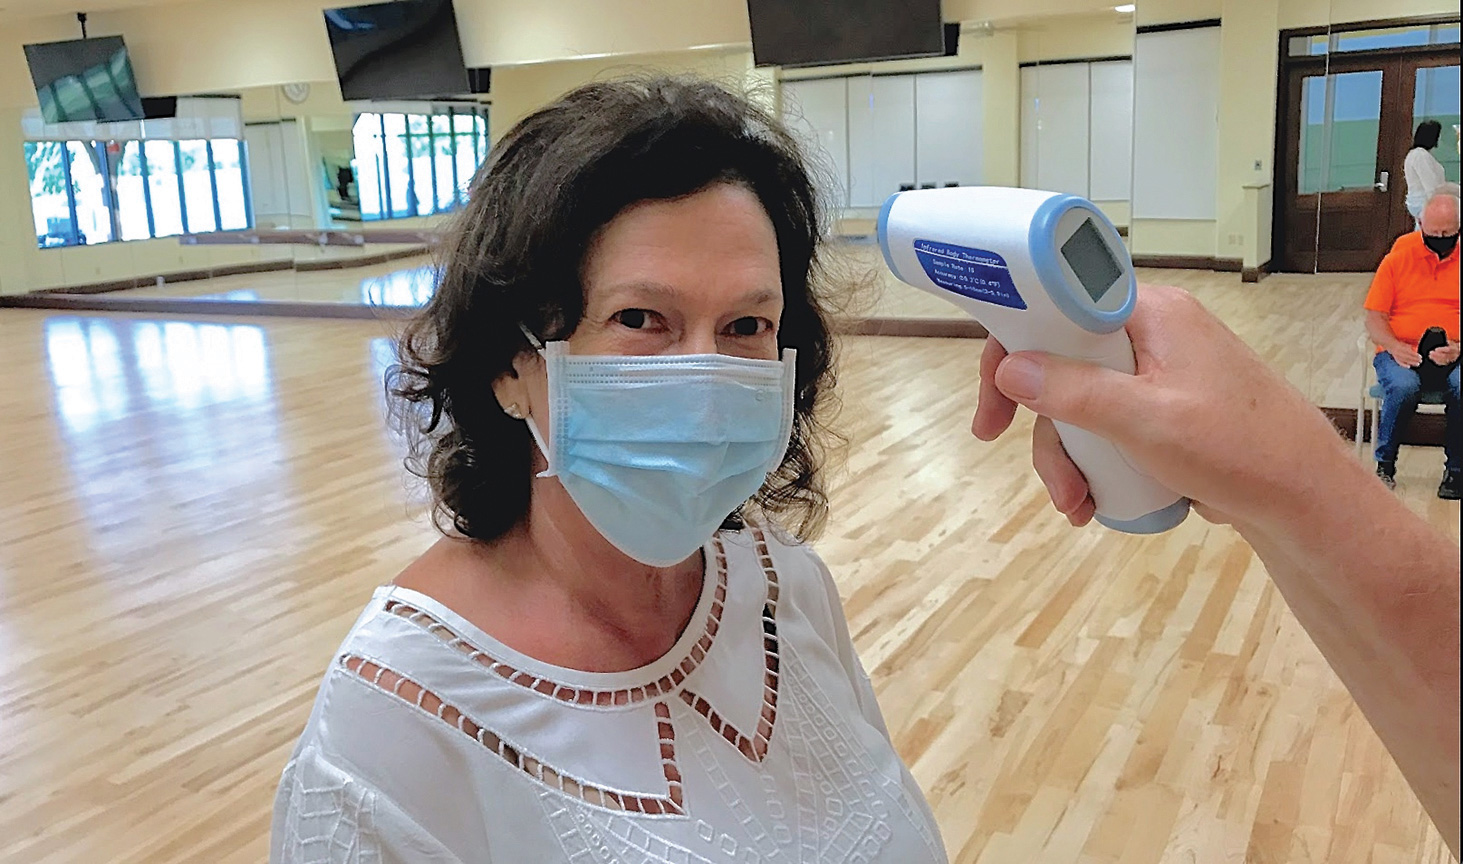 Letha Straub, a member of the social dance class, featured here passing the forehead thermometer requirement